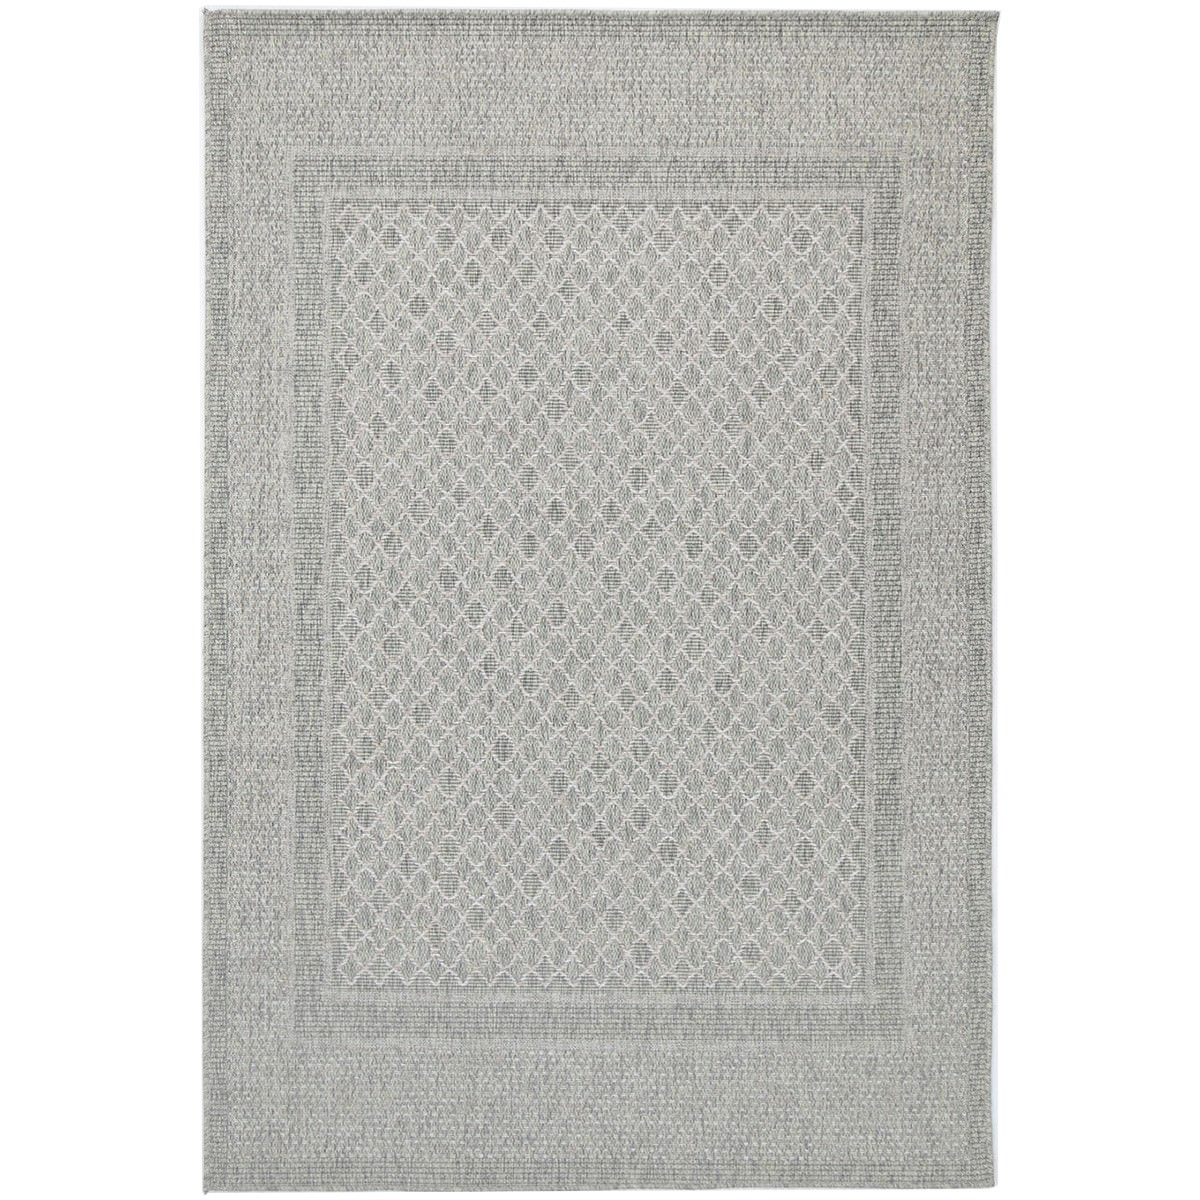 Polo Jada Modern Rug, 290x200cm, Light Grey